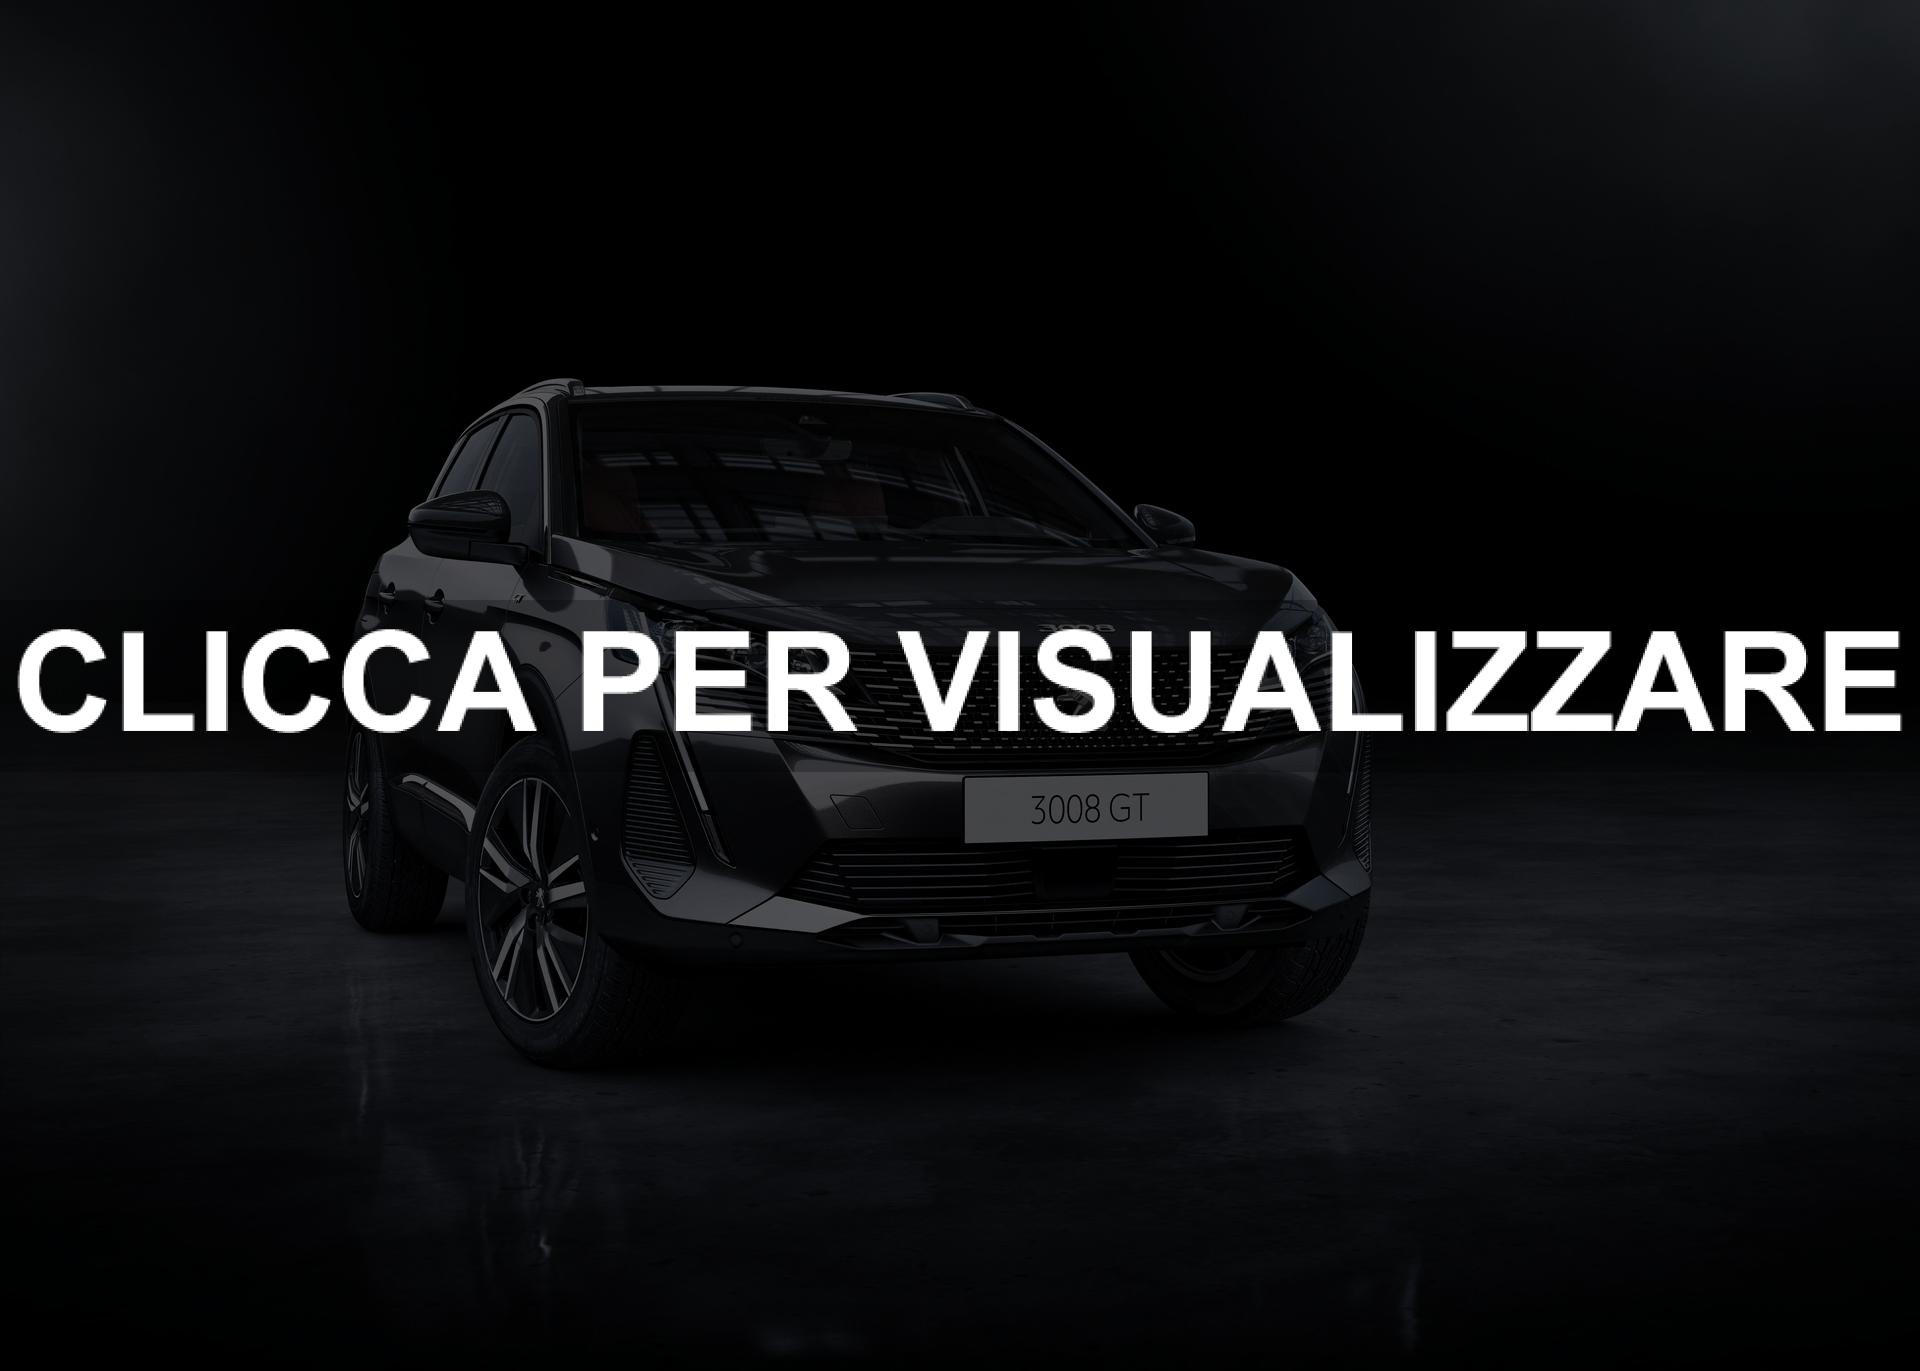 Nuovo suv Peugeot 3008 GT restyling 2021